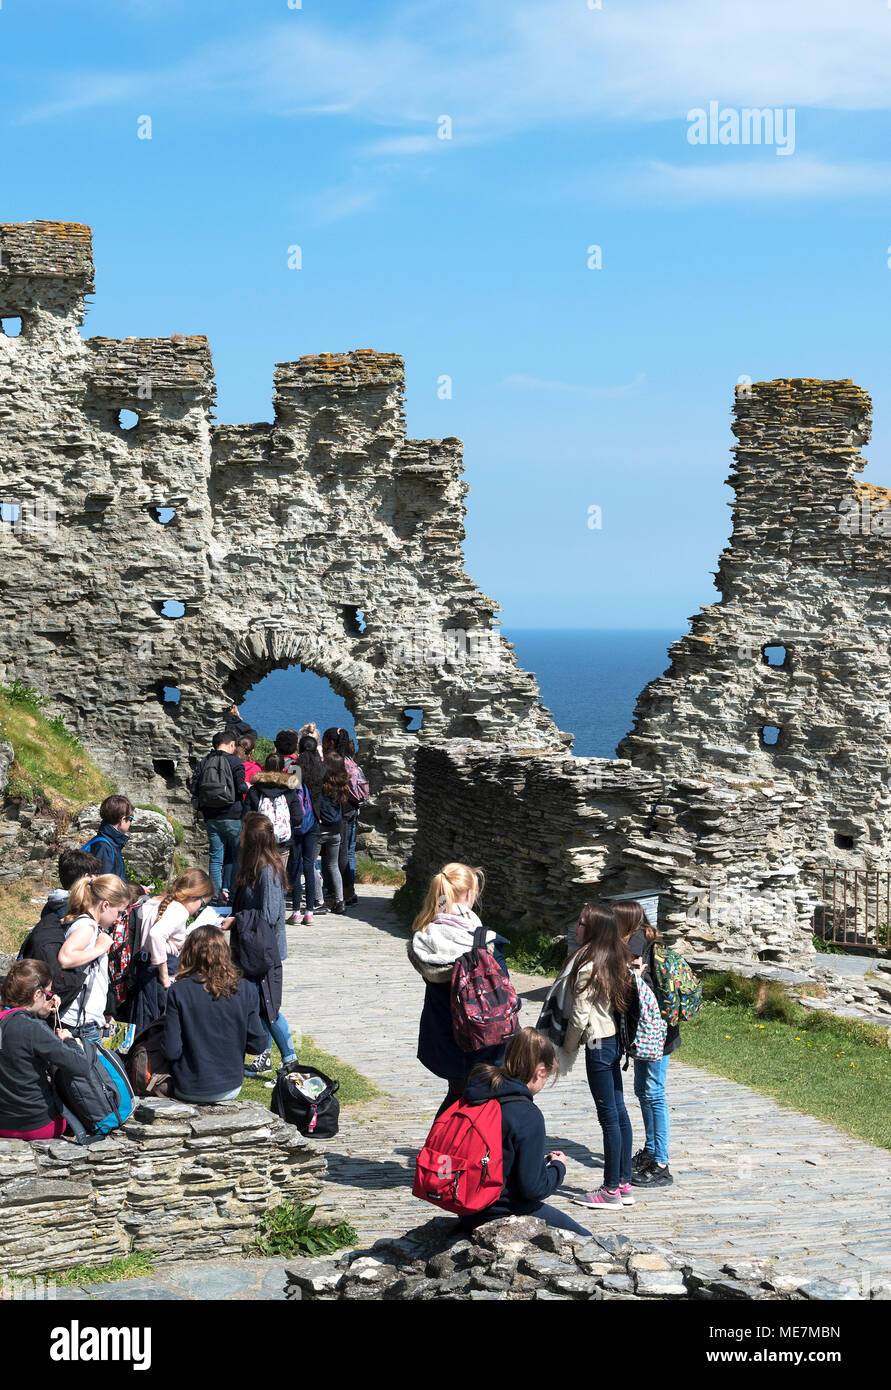 overseas students visitors to tintagel castle in cornwall, england, britain, uk, - Stock Image